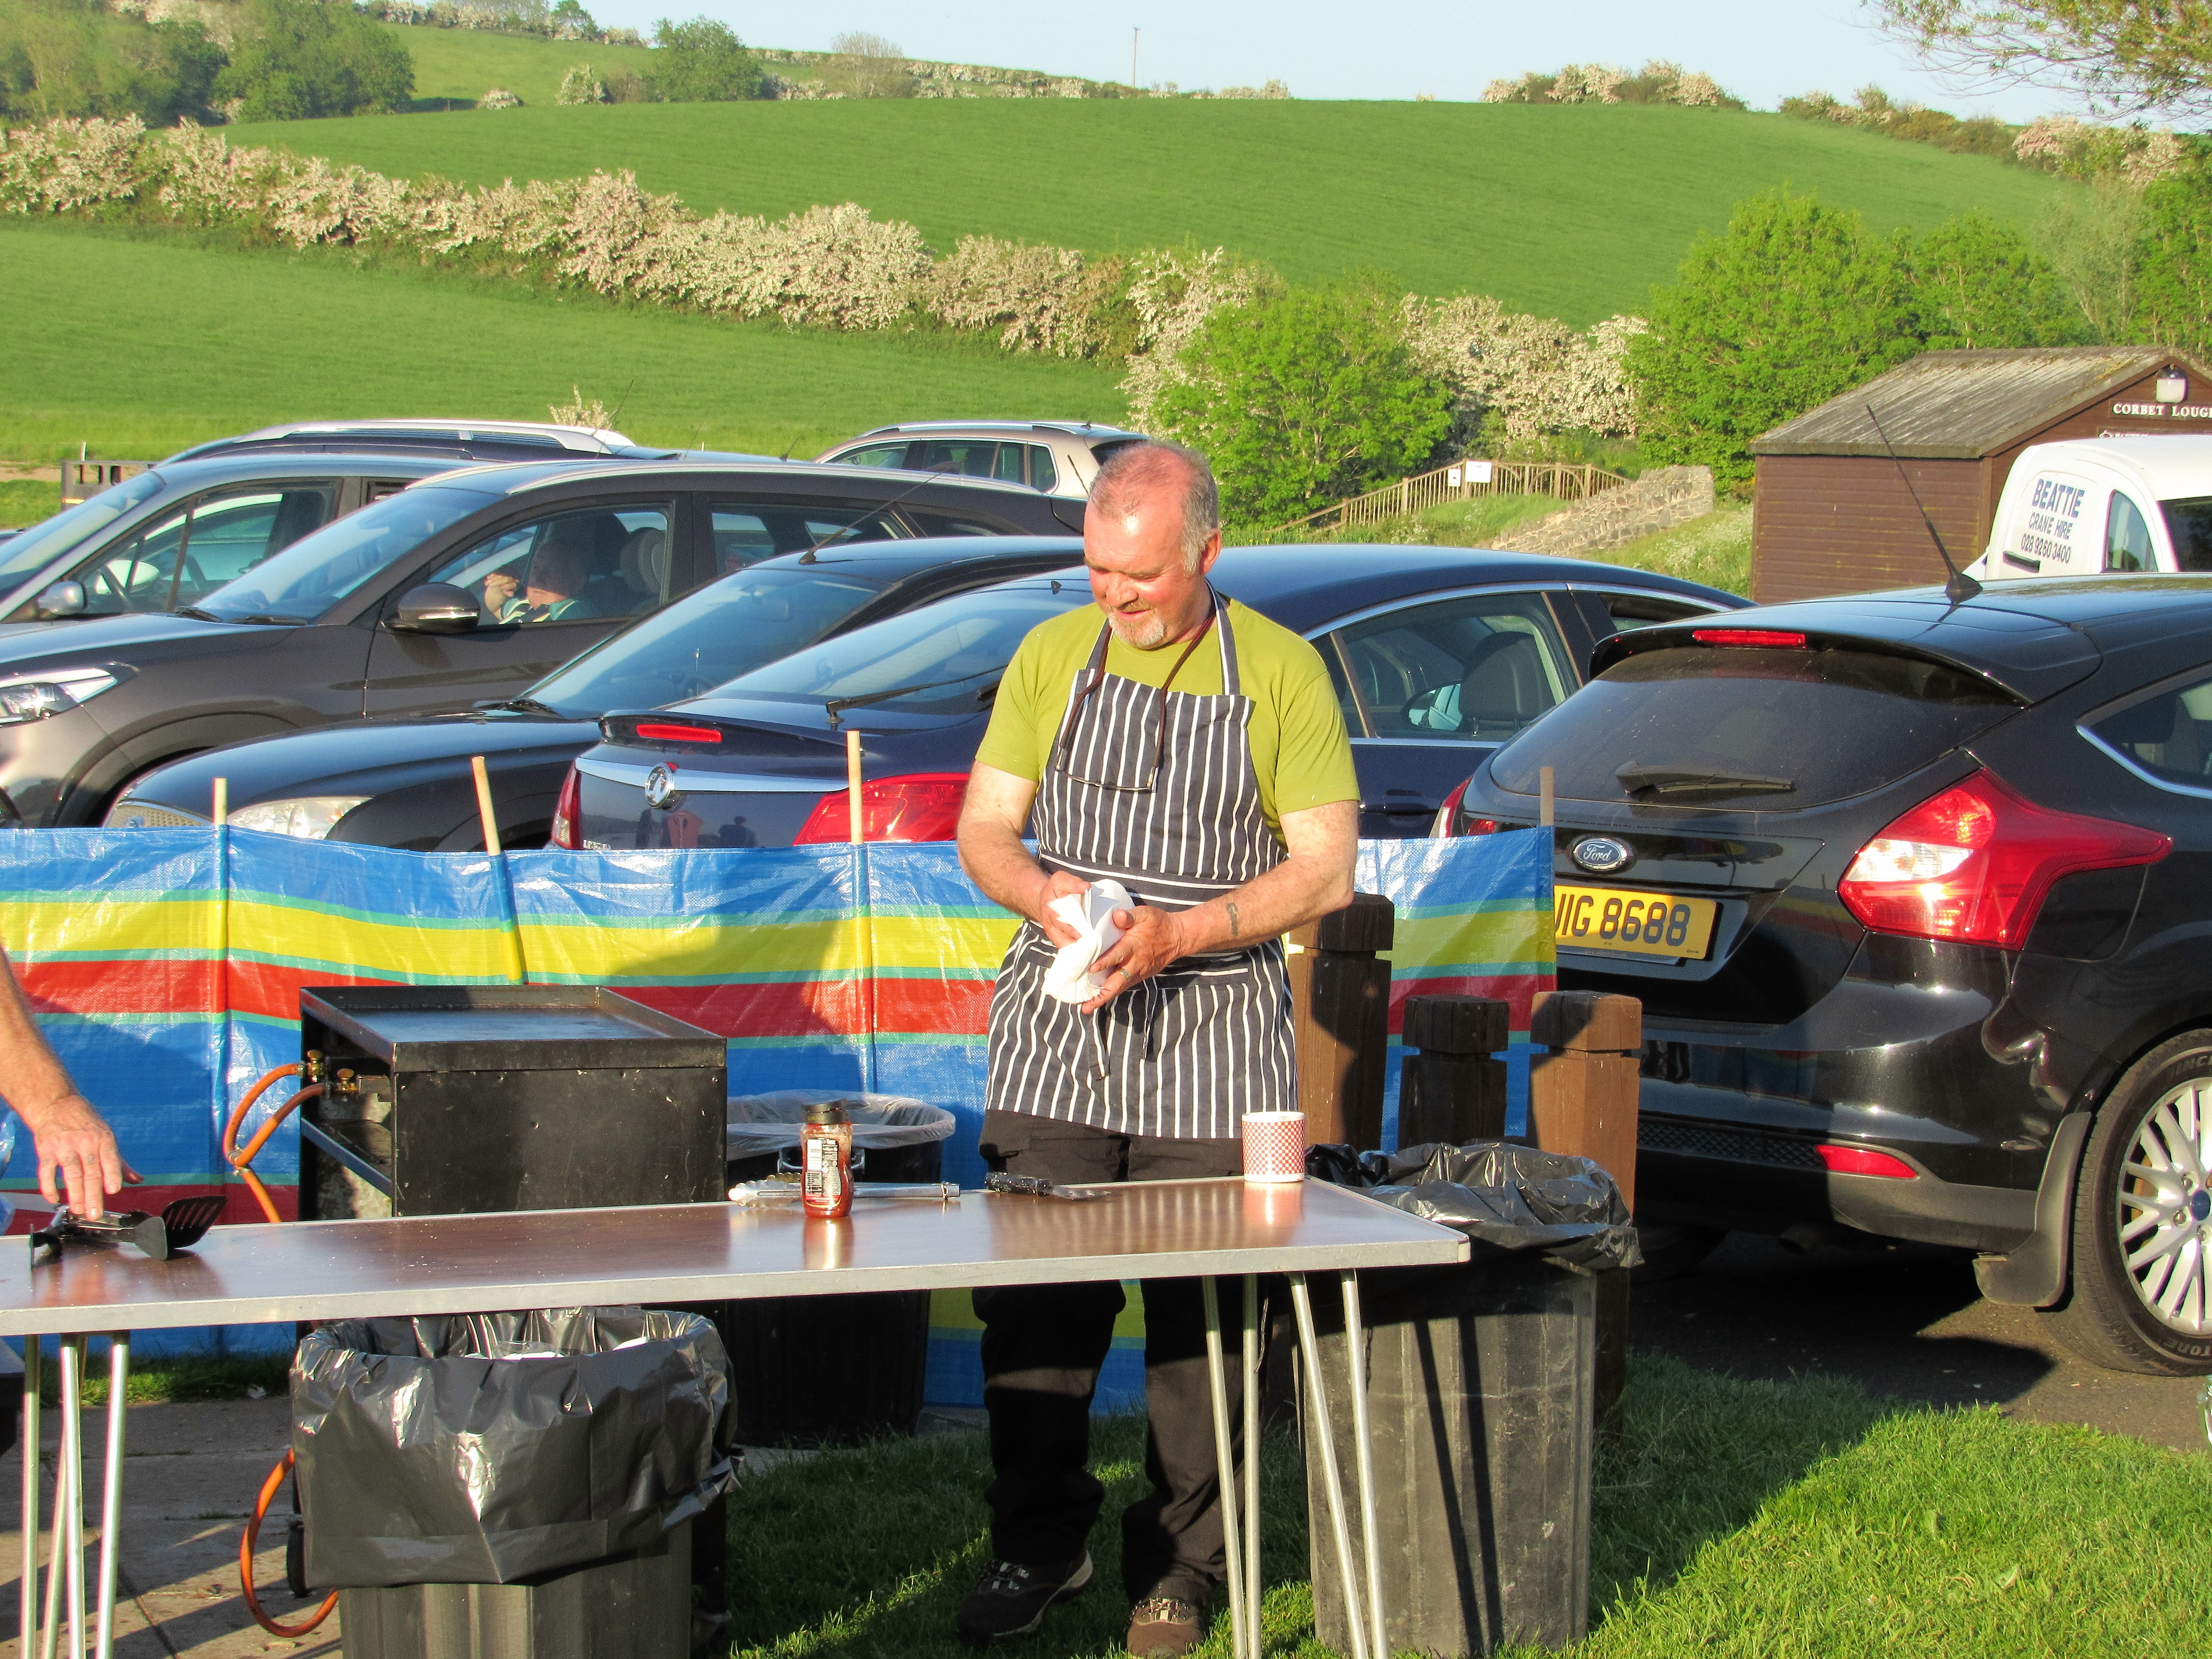 BAC Geoff Hylands, Head Chef at the Juvenile and Junior Prize Distribution Evening and BBQ at the Corbet Lough on 25 May 2017